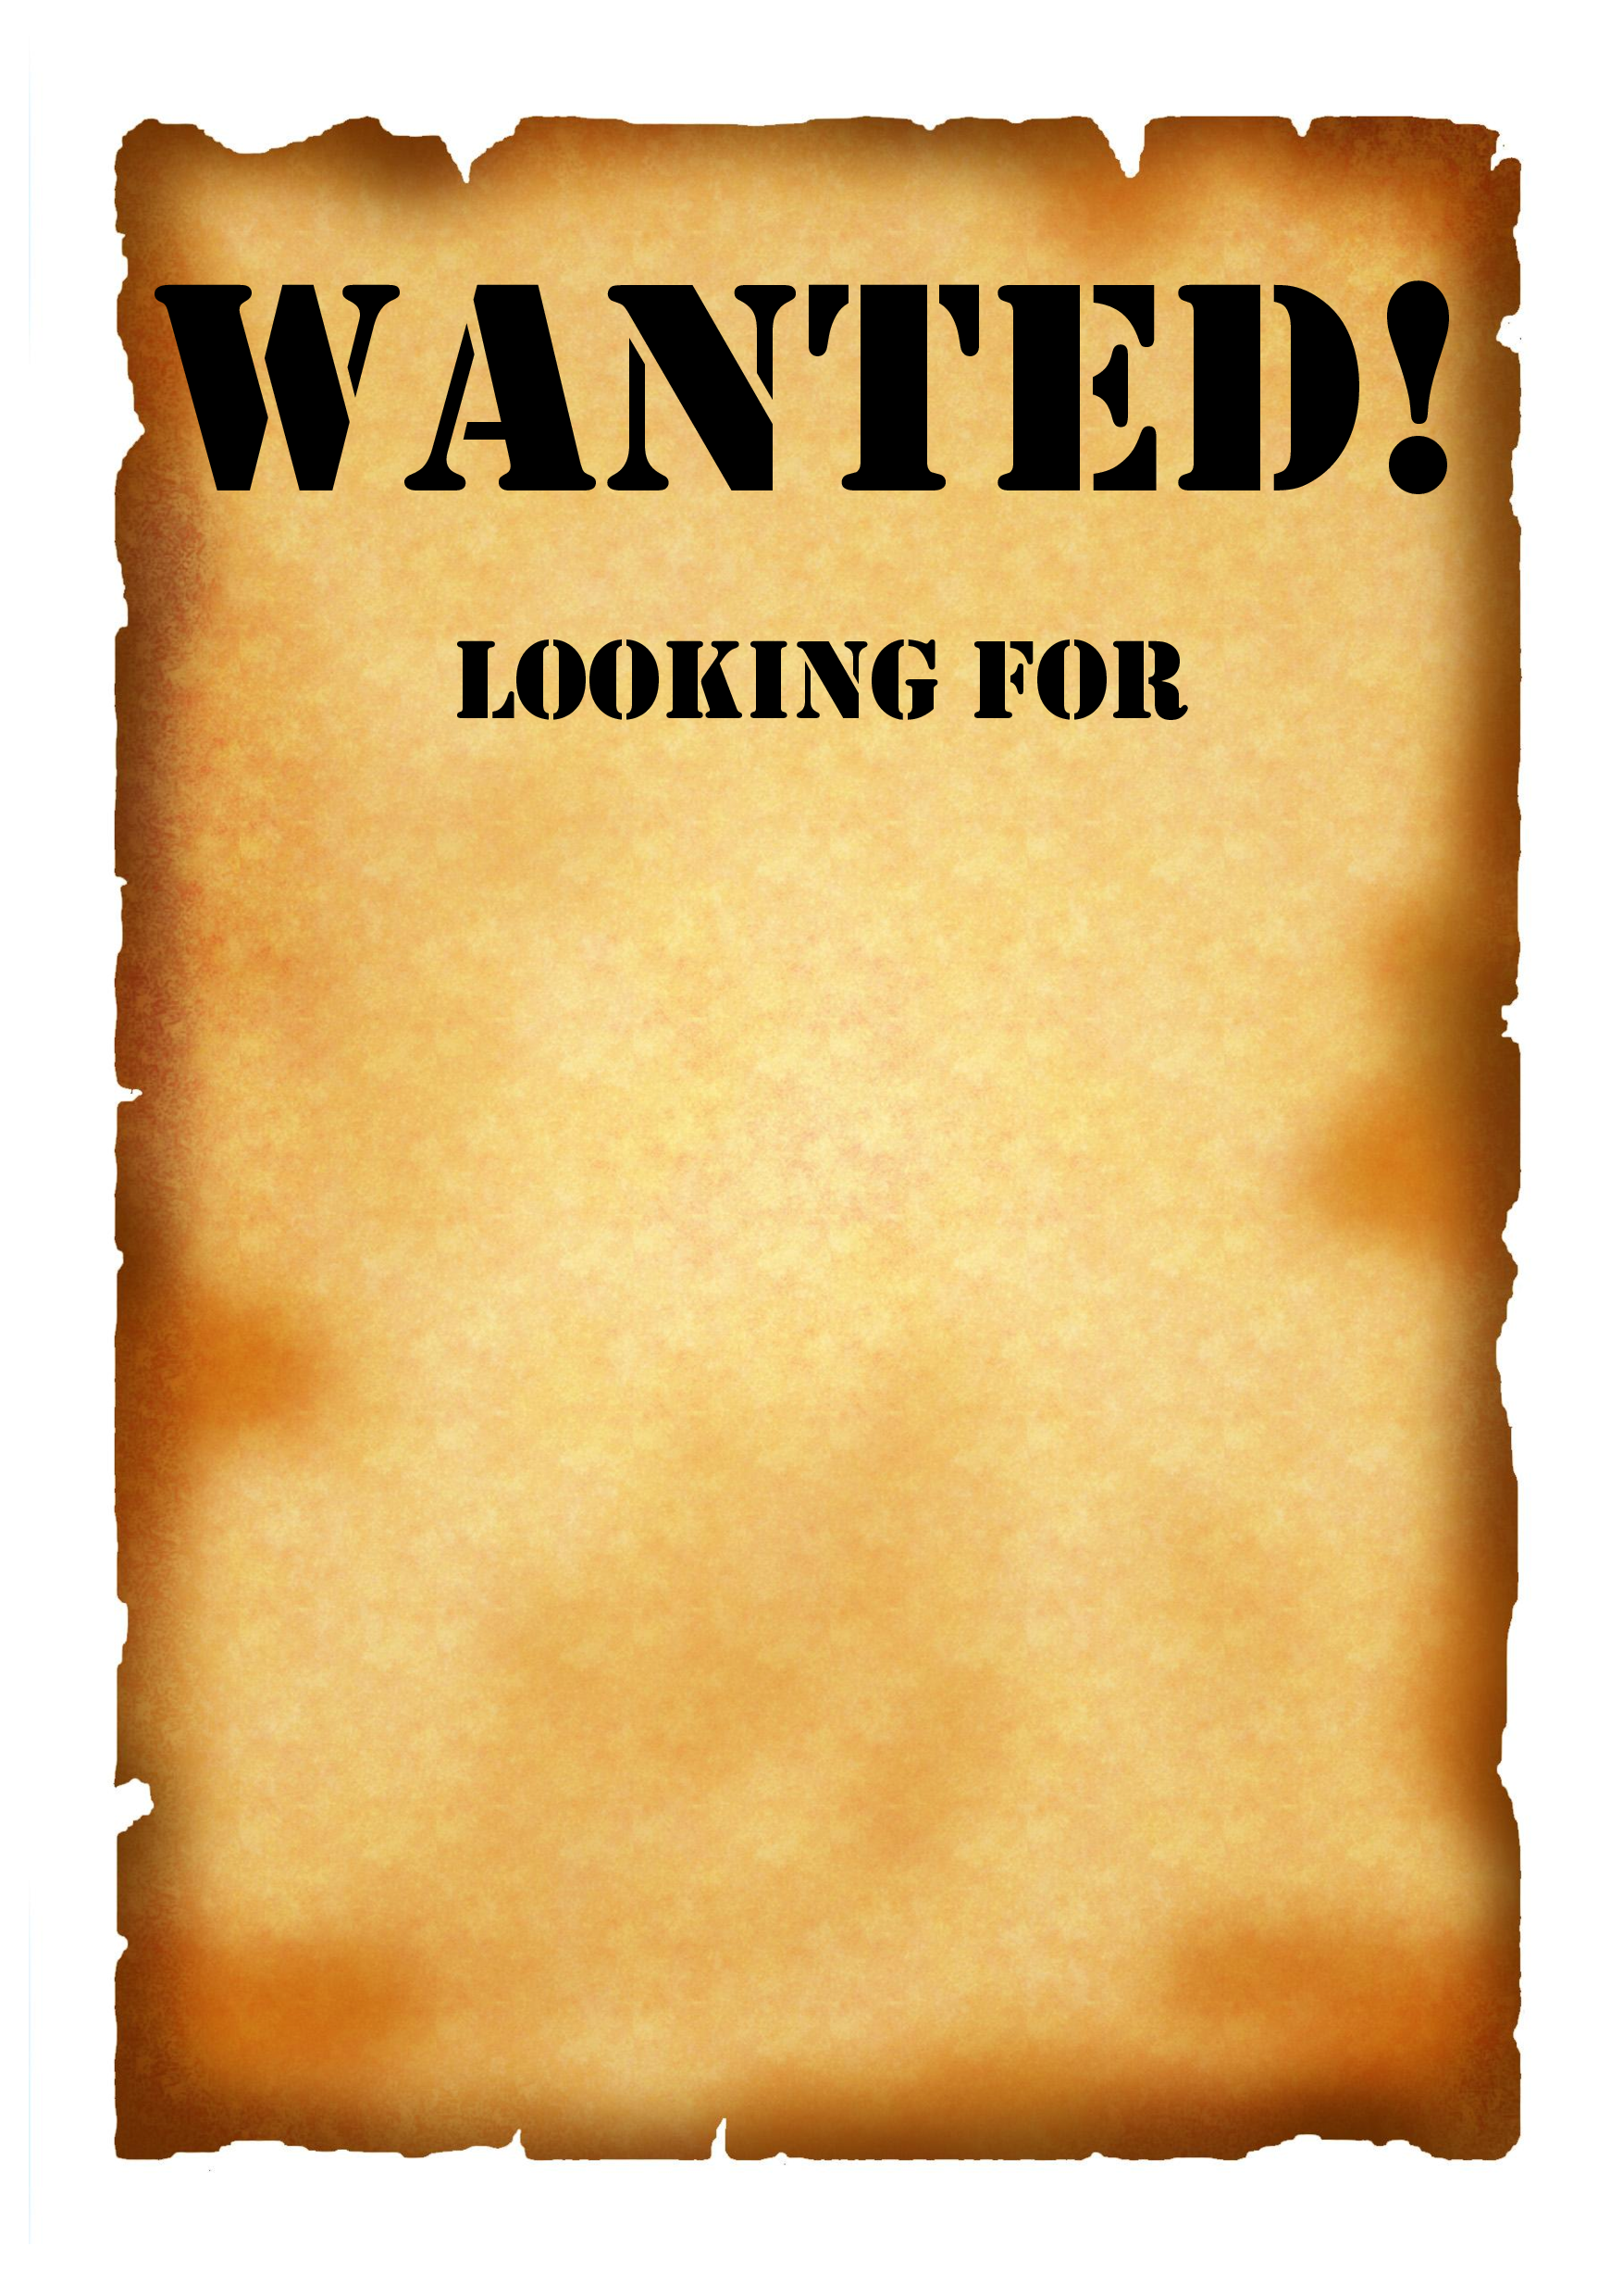 Wanted wallpaper wallpapersafari for Wanted pirate poster template